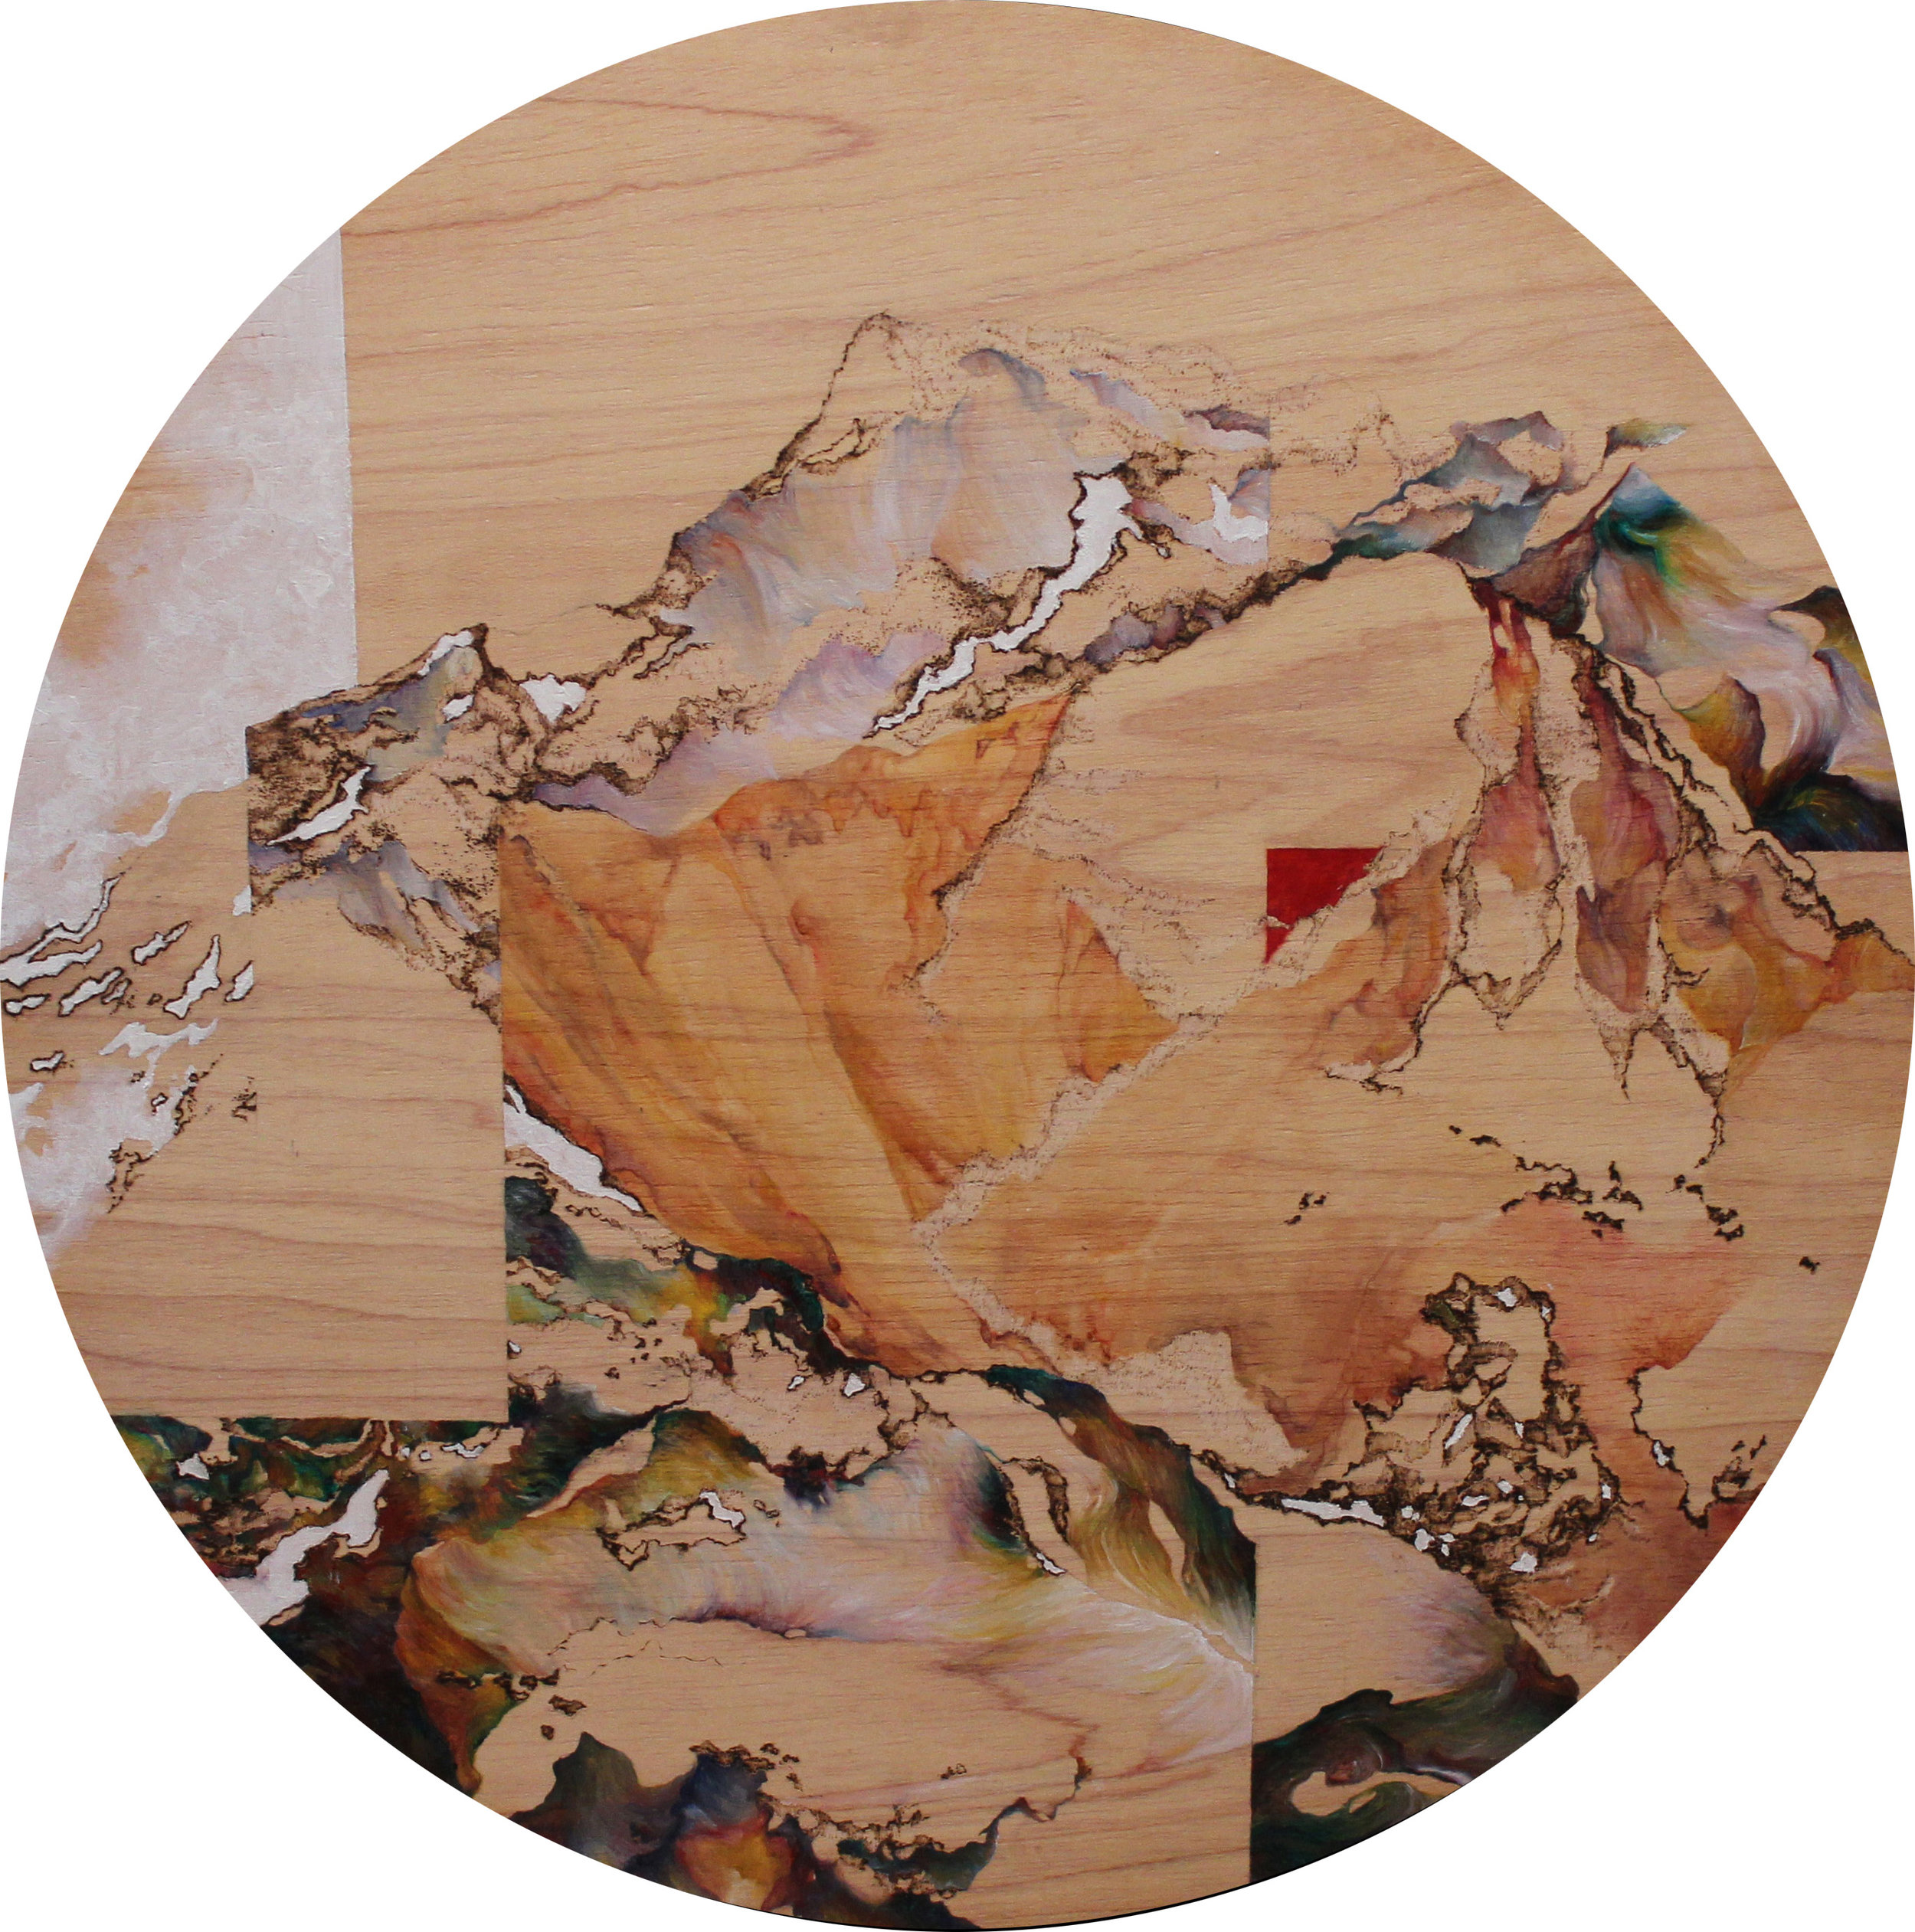 Danxia, 2016. Oil and Pyrography on Wood